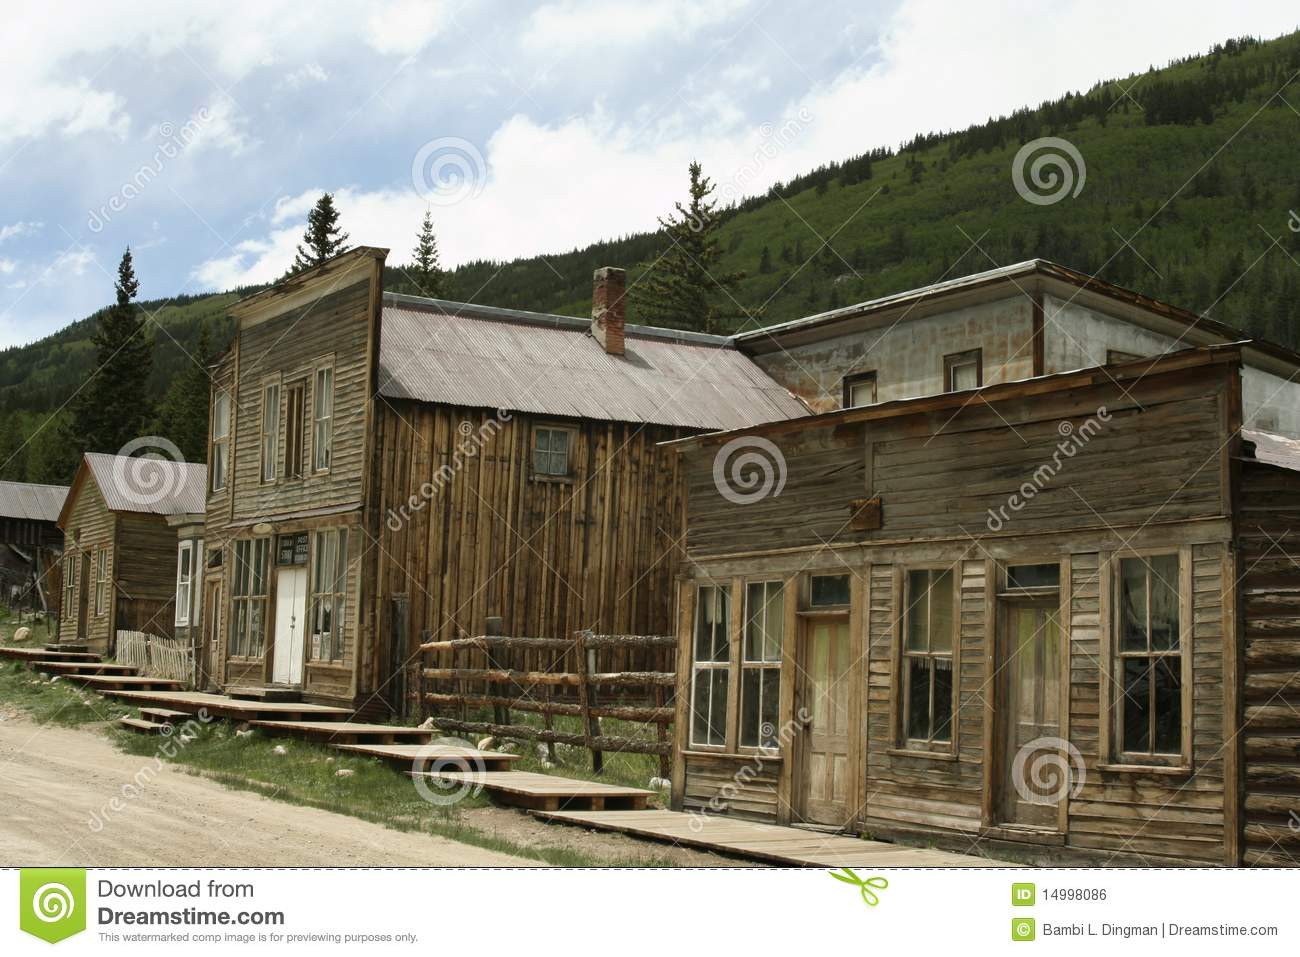 in Saint Elmo Ghost town. St. Elmo is Colorado's best-preserved ghost ...